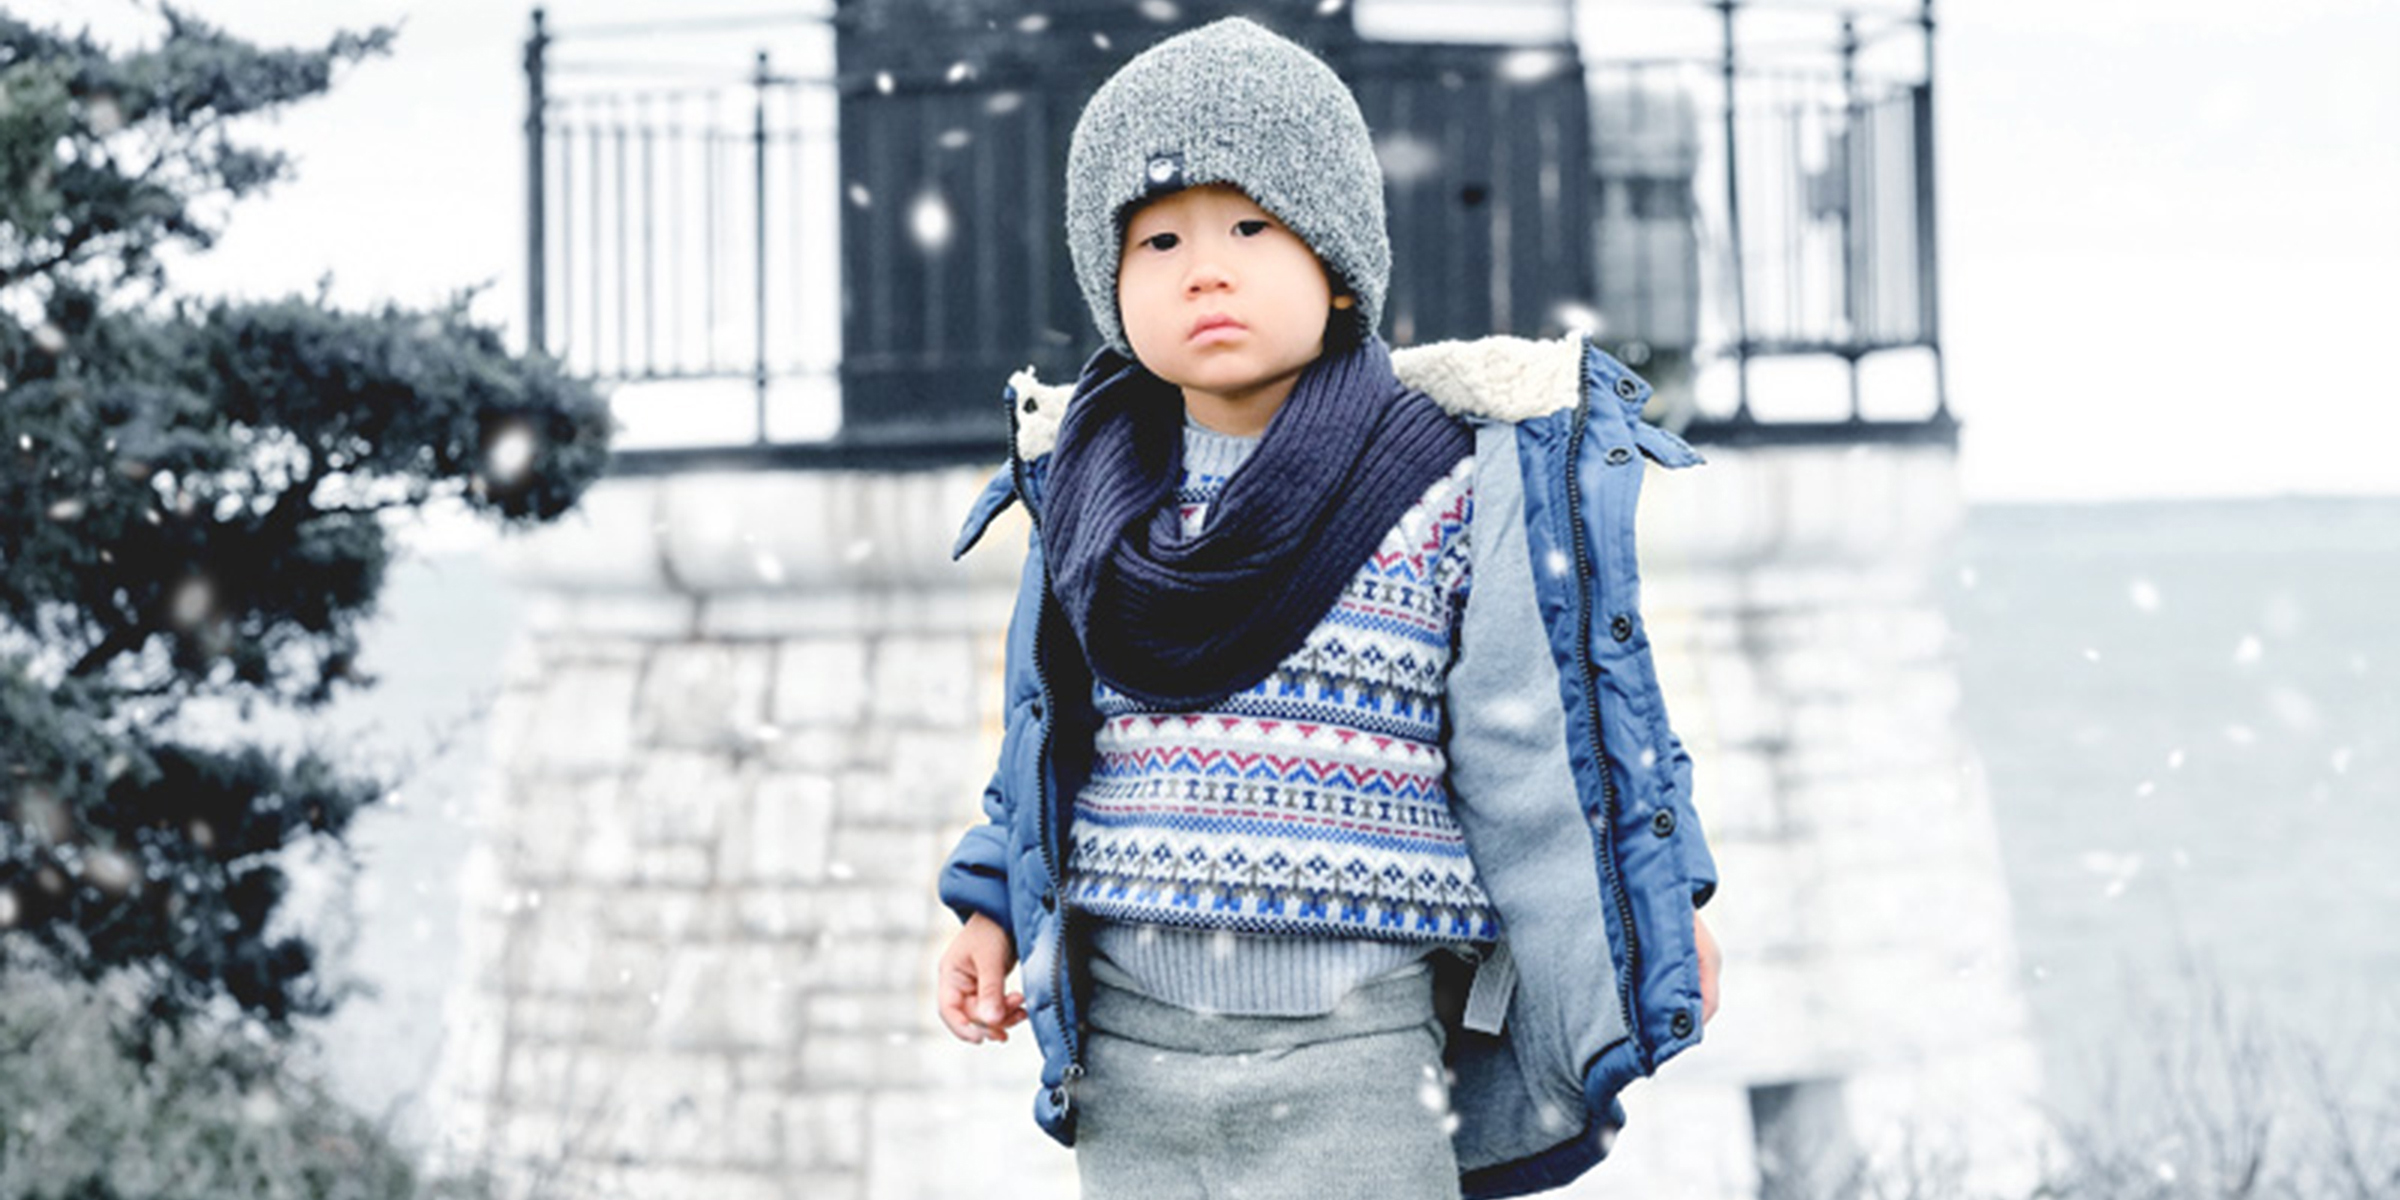 d22fb86c1 The best winter clothes for kids and toddlers 2019  coats